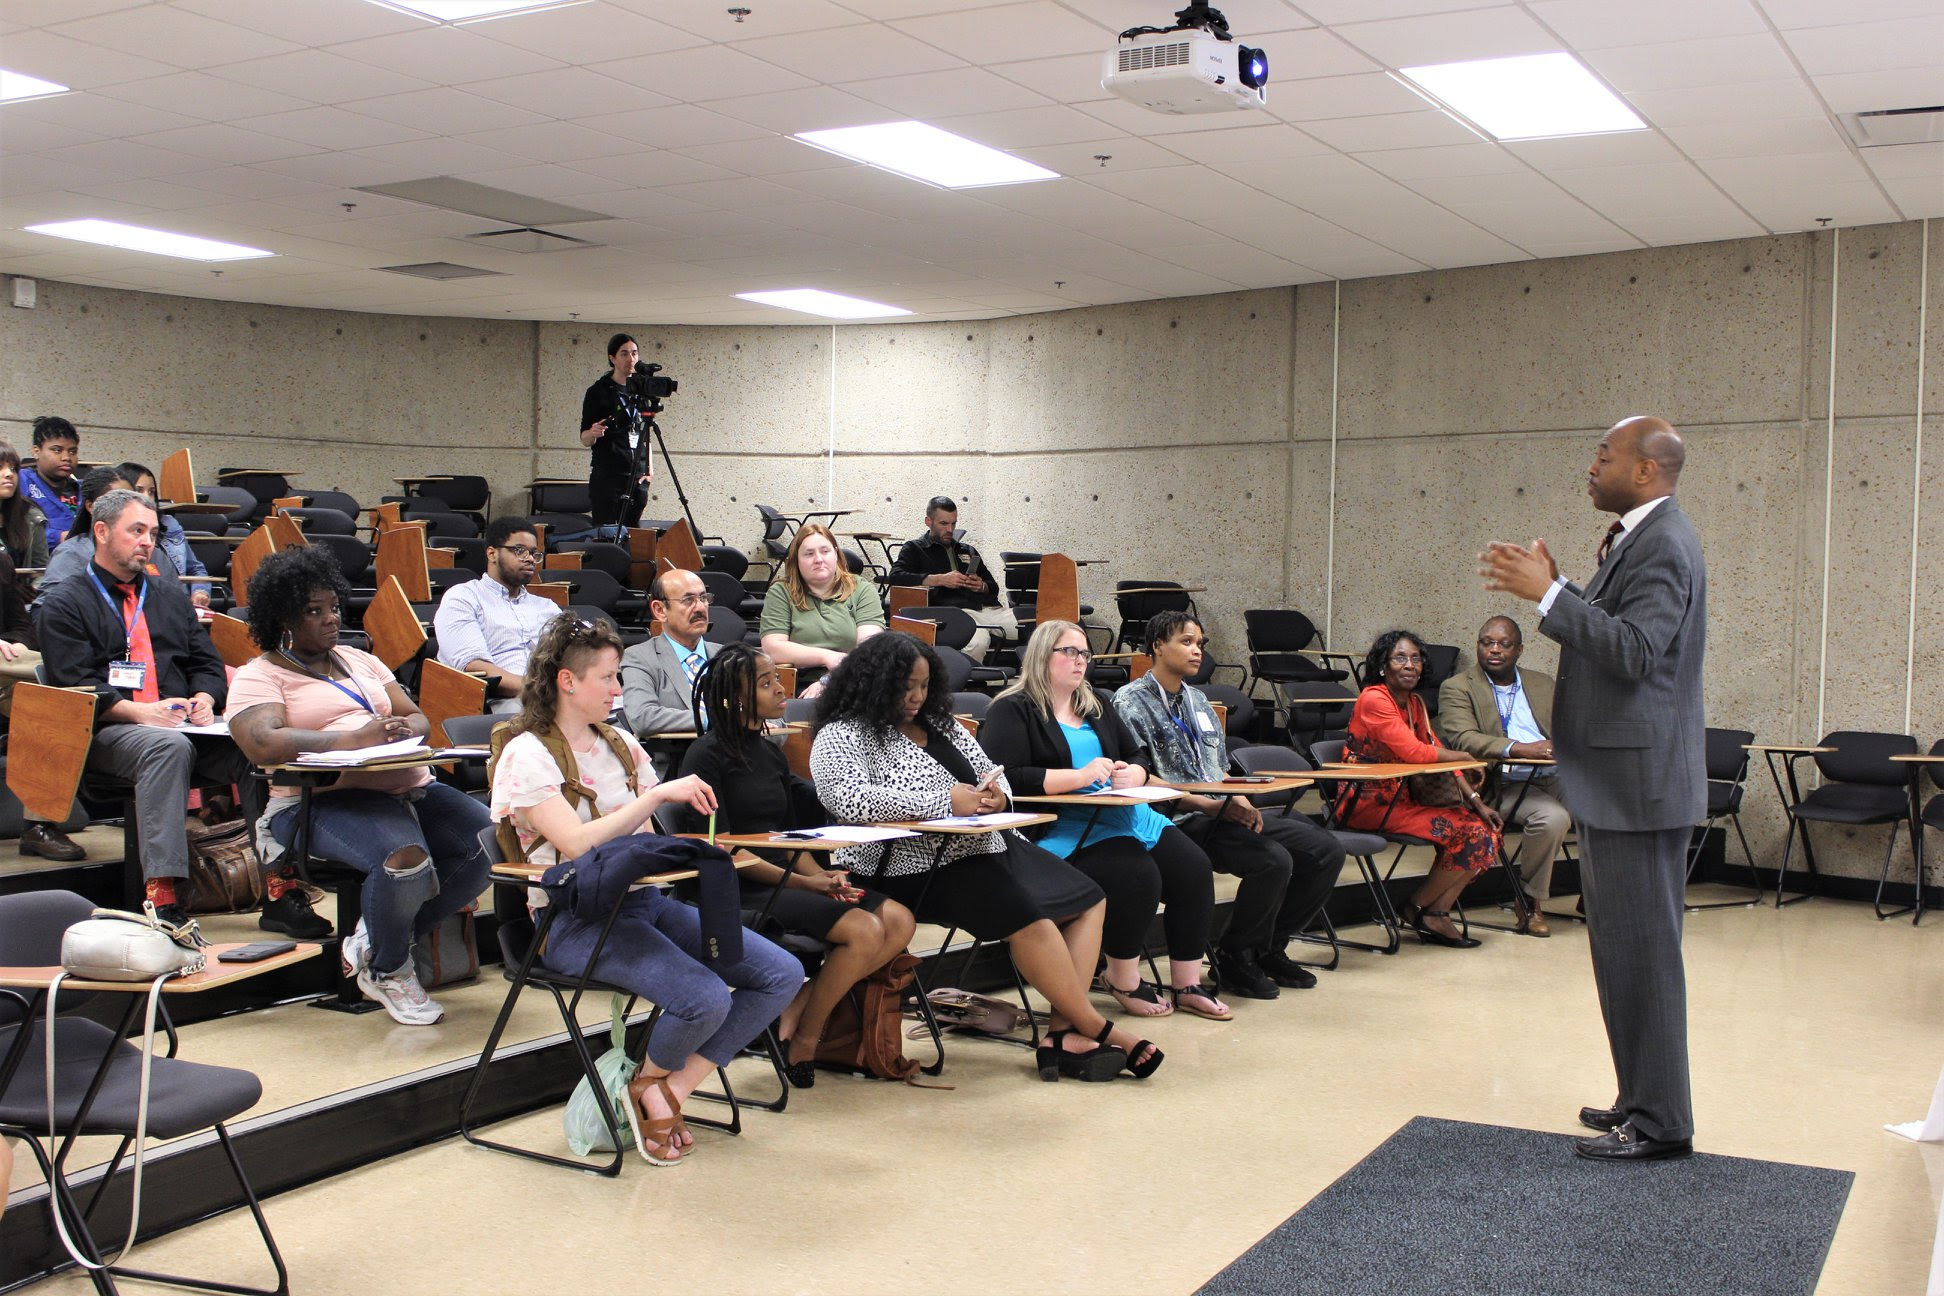 Representative Harold Love, Jr. speaks to students, faculty, staff, and alumni at Tennessee State University for the Unfair & Underfunded event on April 16, 2019.